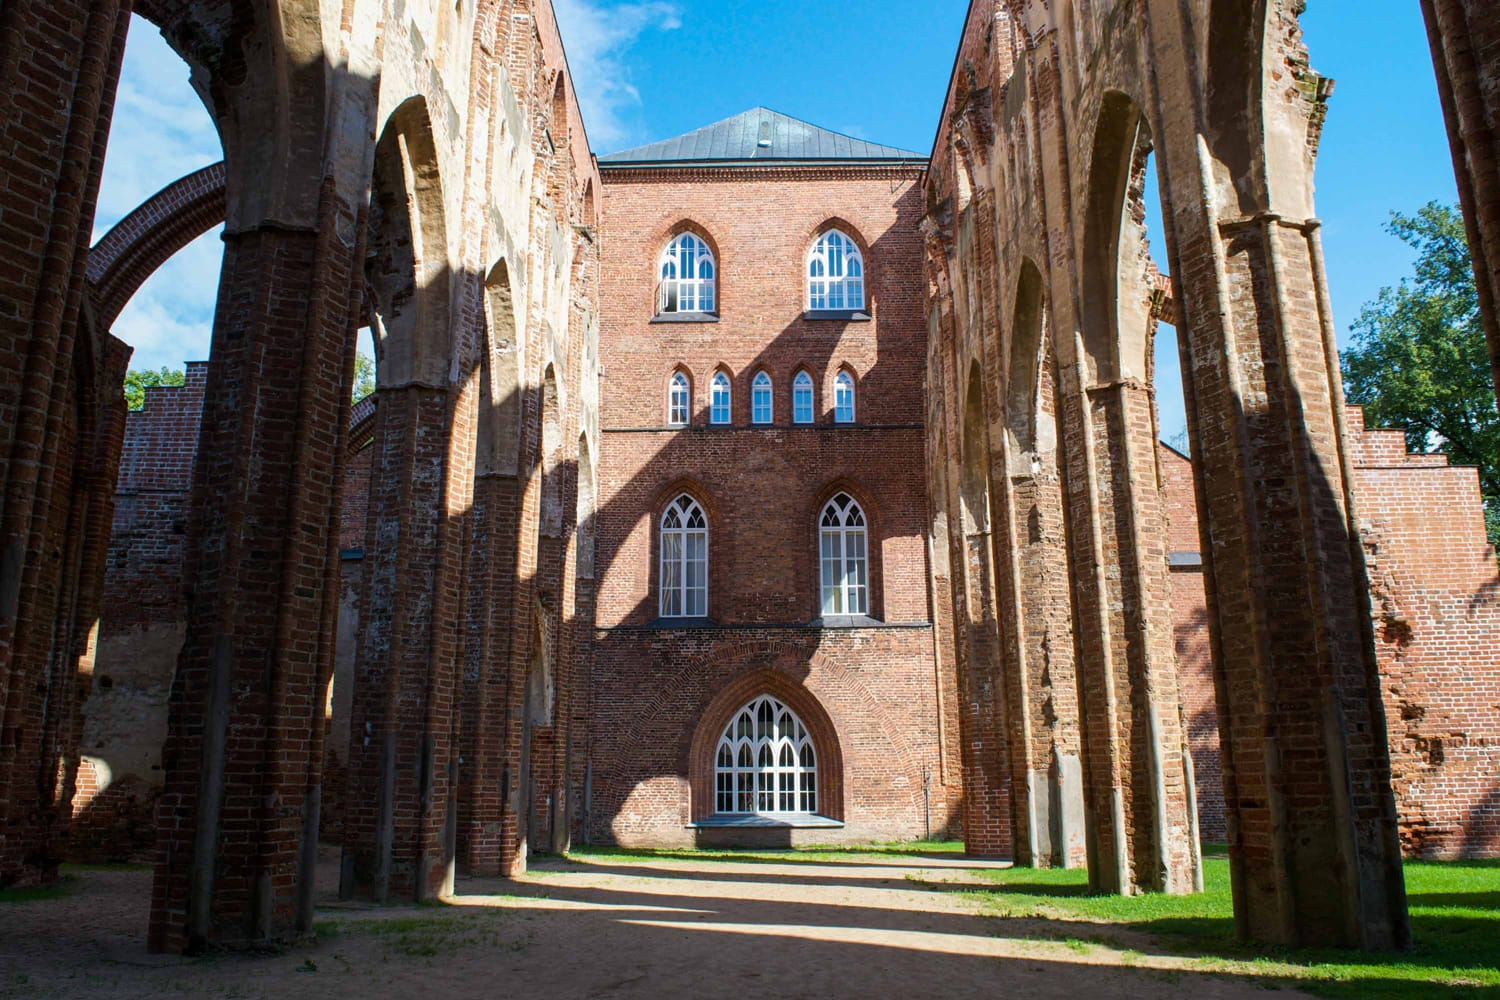 Cathedral Ruins in Tartu, Estonia